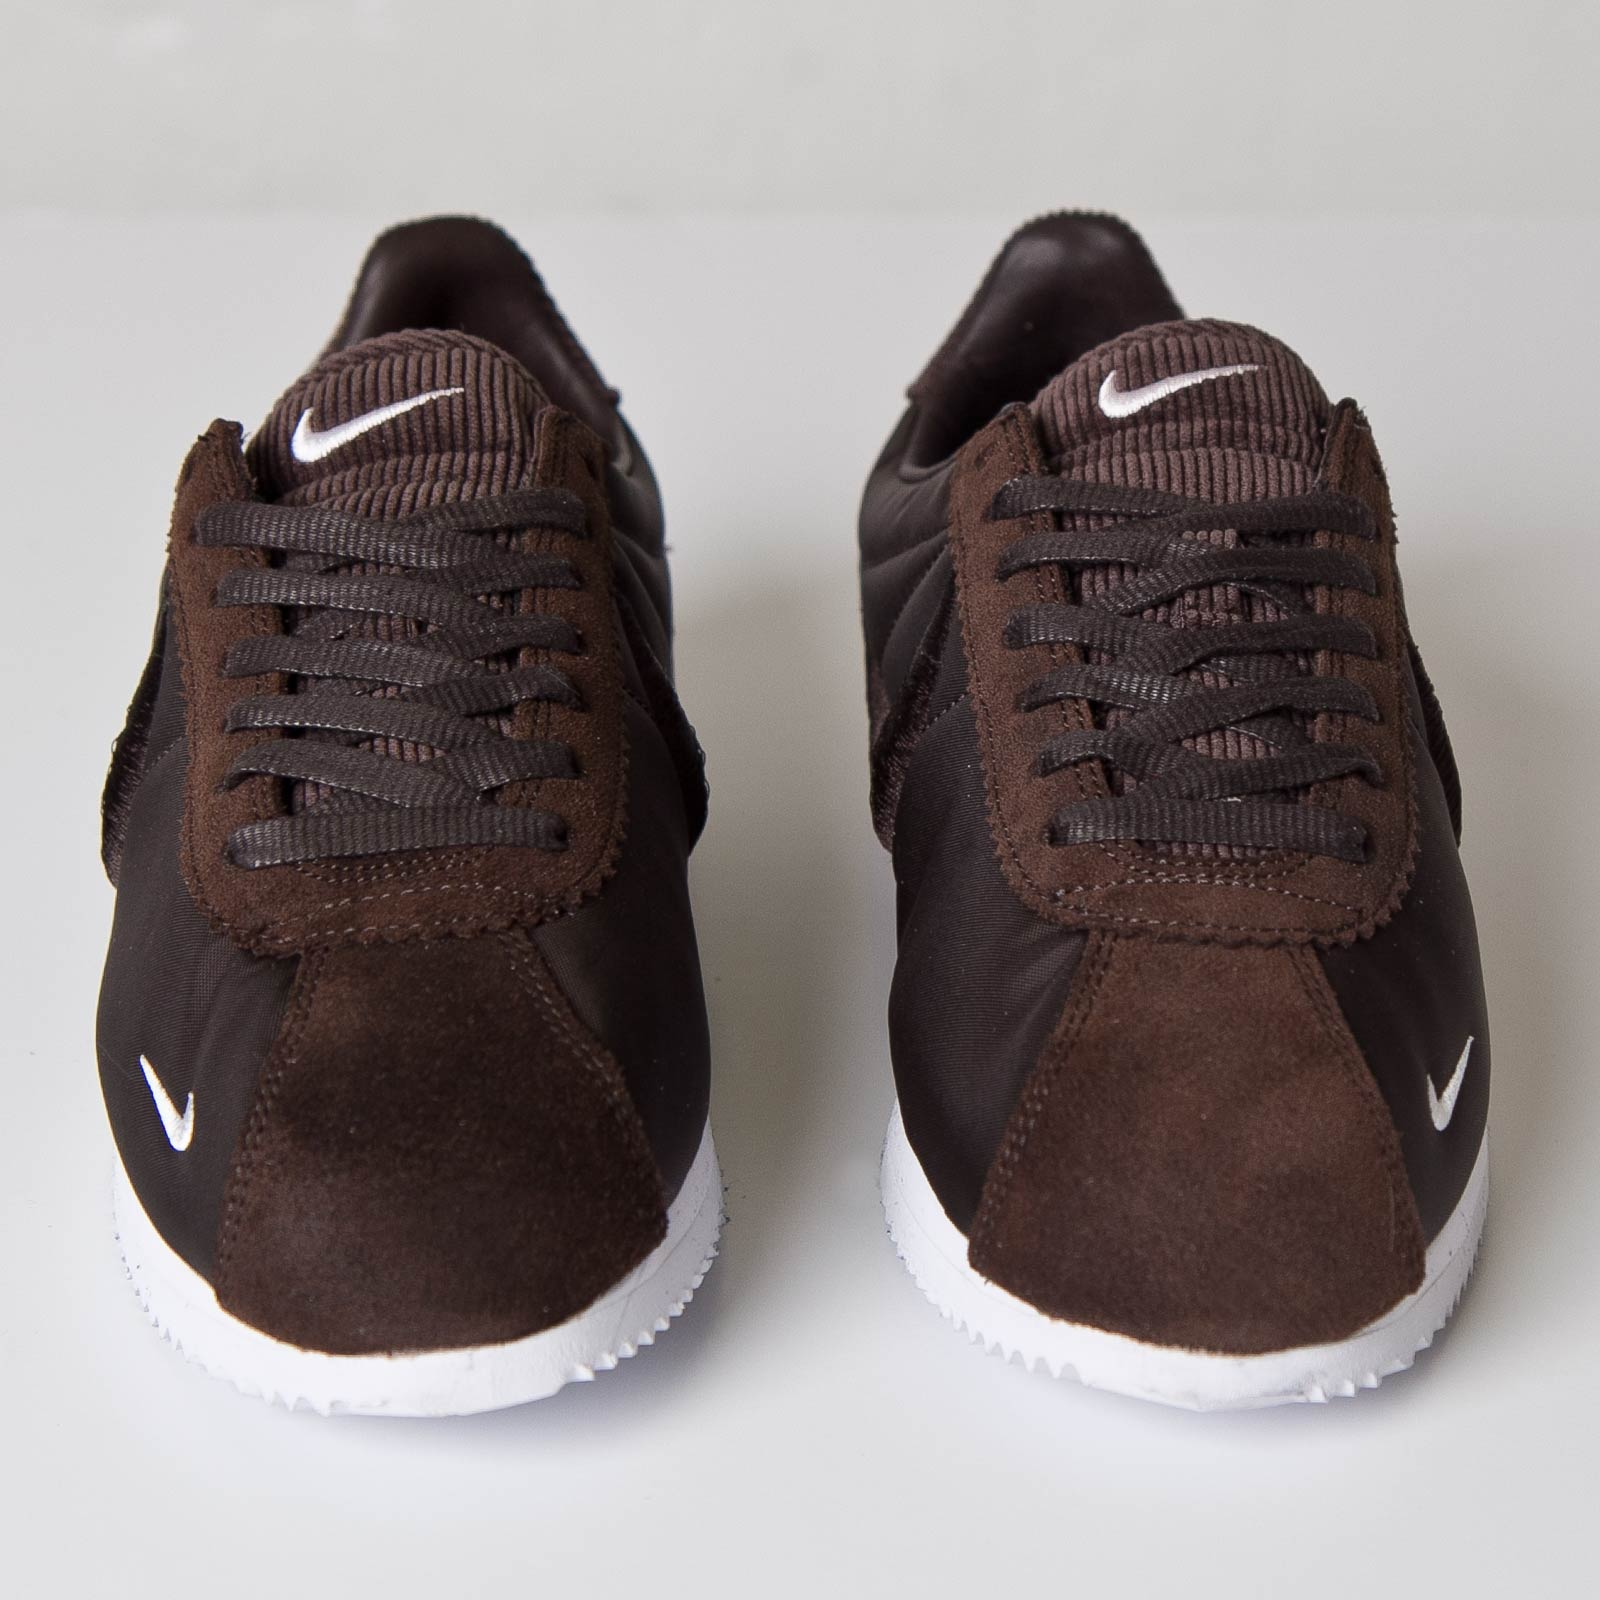 wholesale dealer 36805 6e7b8 Nike Classic Cortez SP - 789594-222 - Sneakersnstuff ...